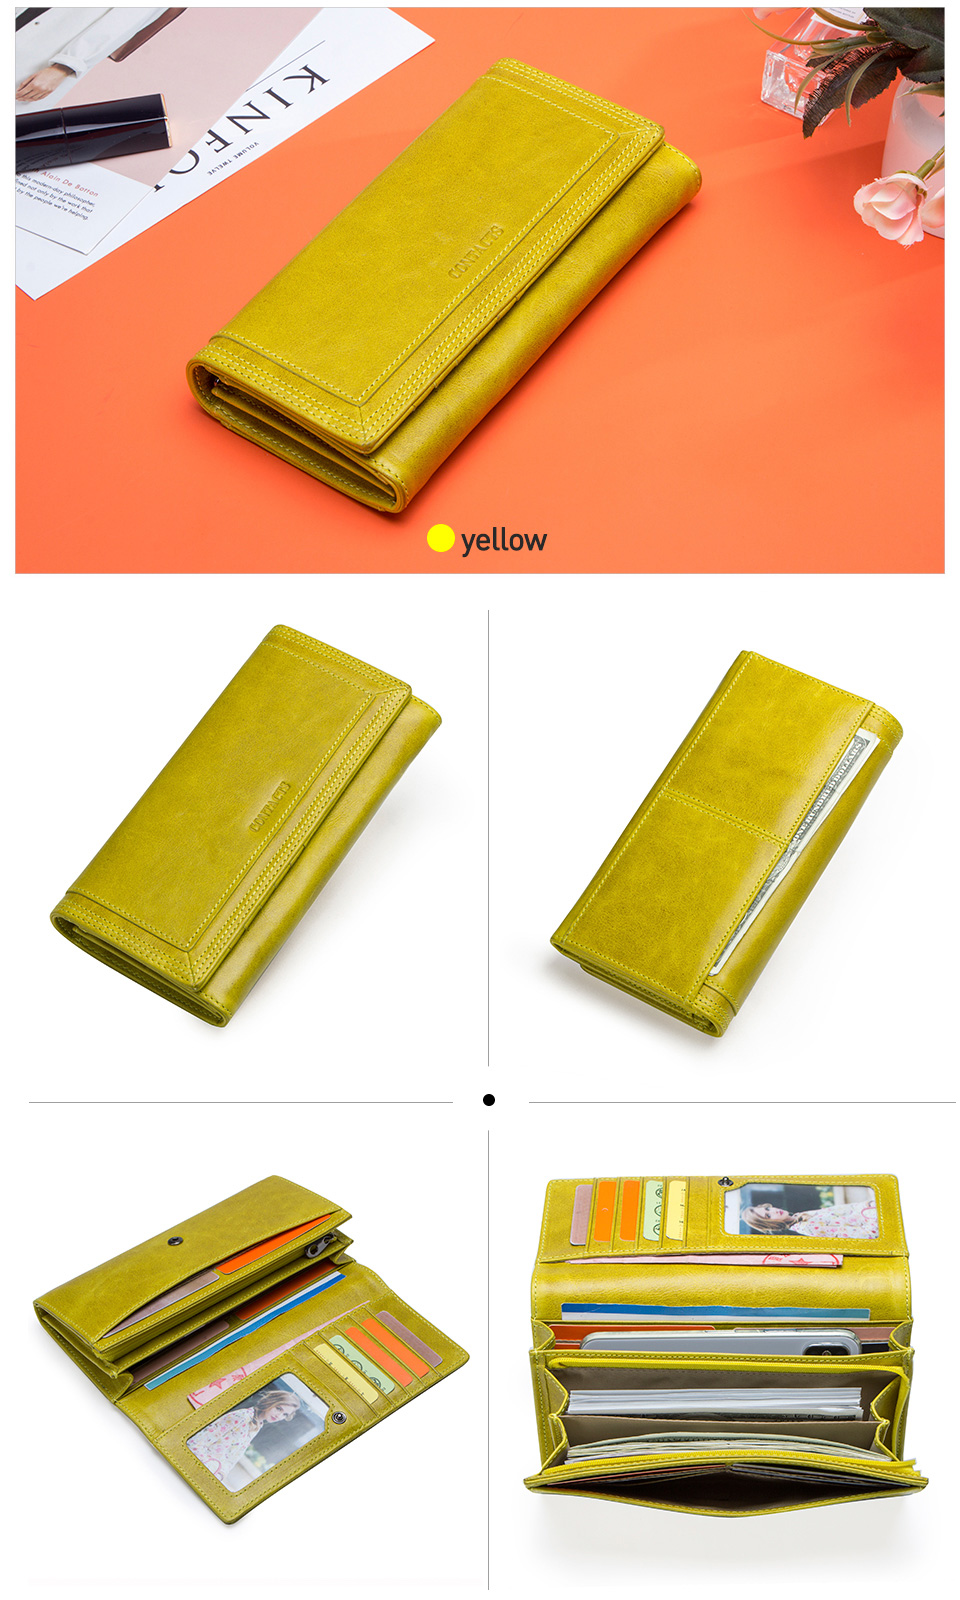 Clutch Wallets for Women Coin Purse Phone Pocket Genuine Leather Female Wallet Card Holder Money Bag gray 19*10*3.5cm 15